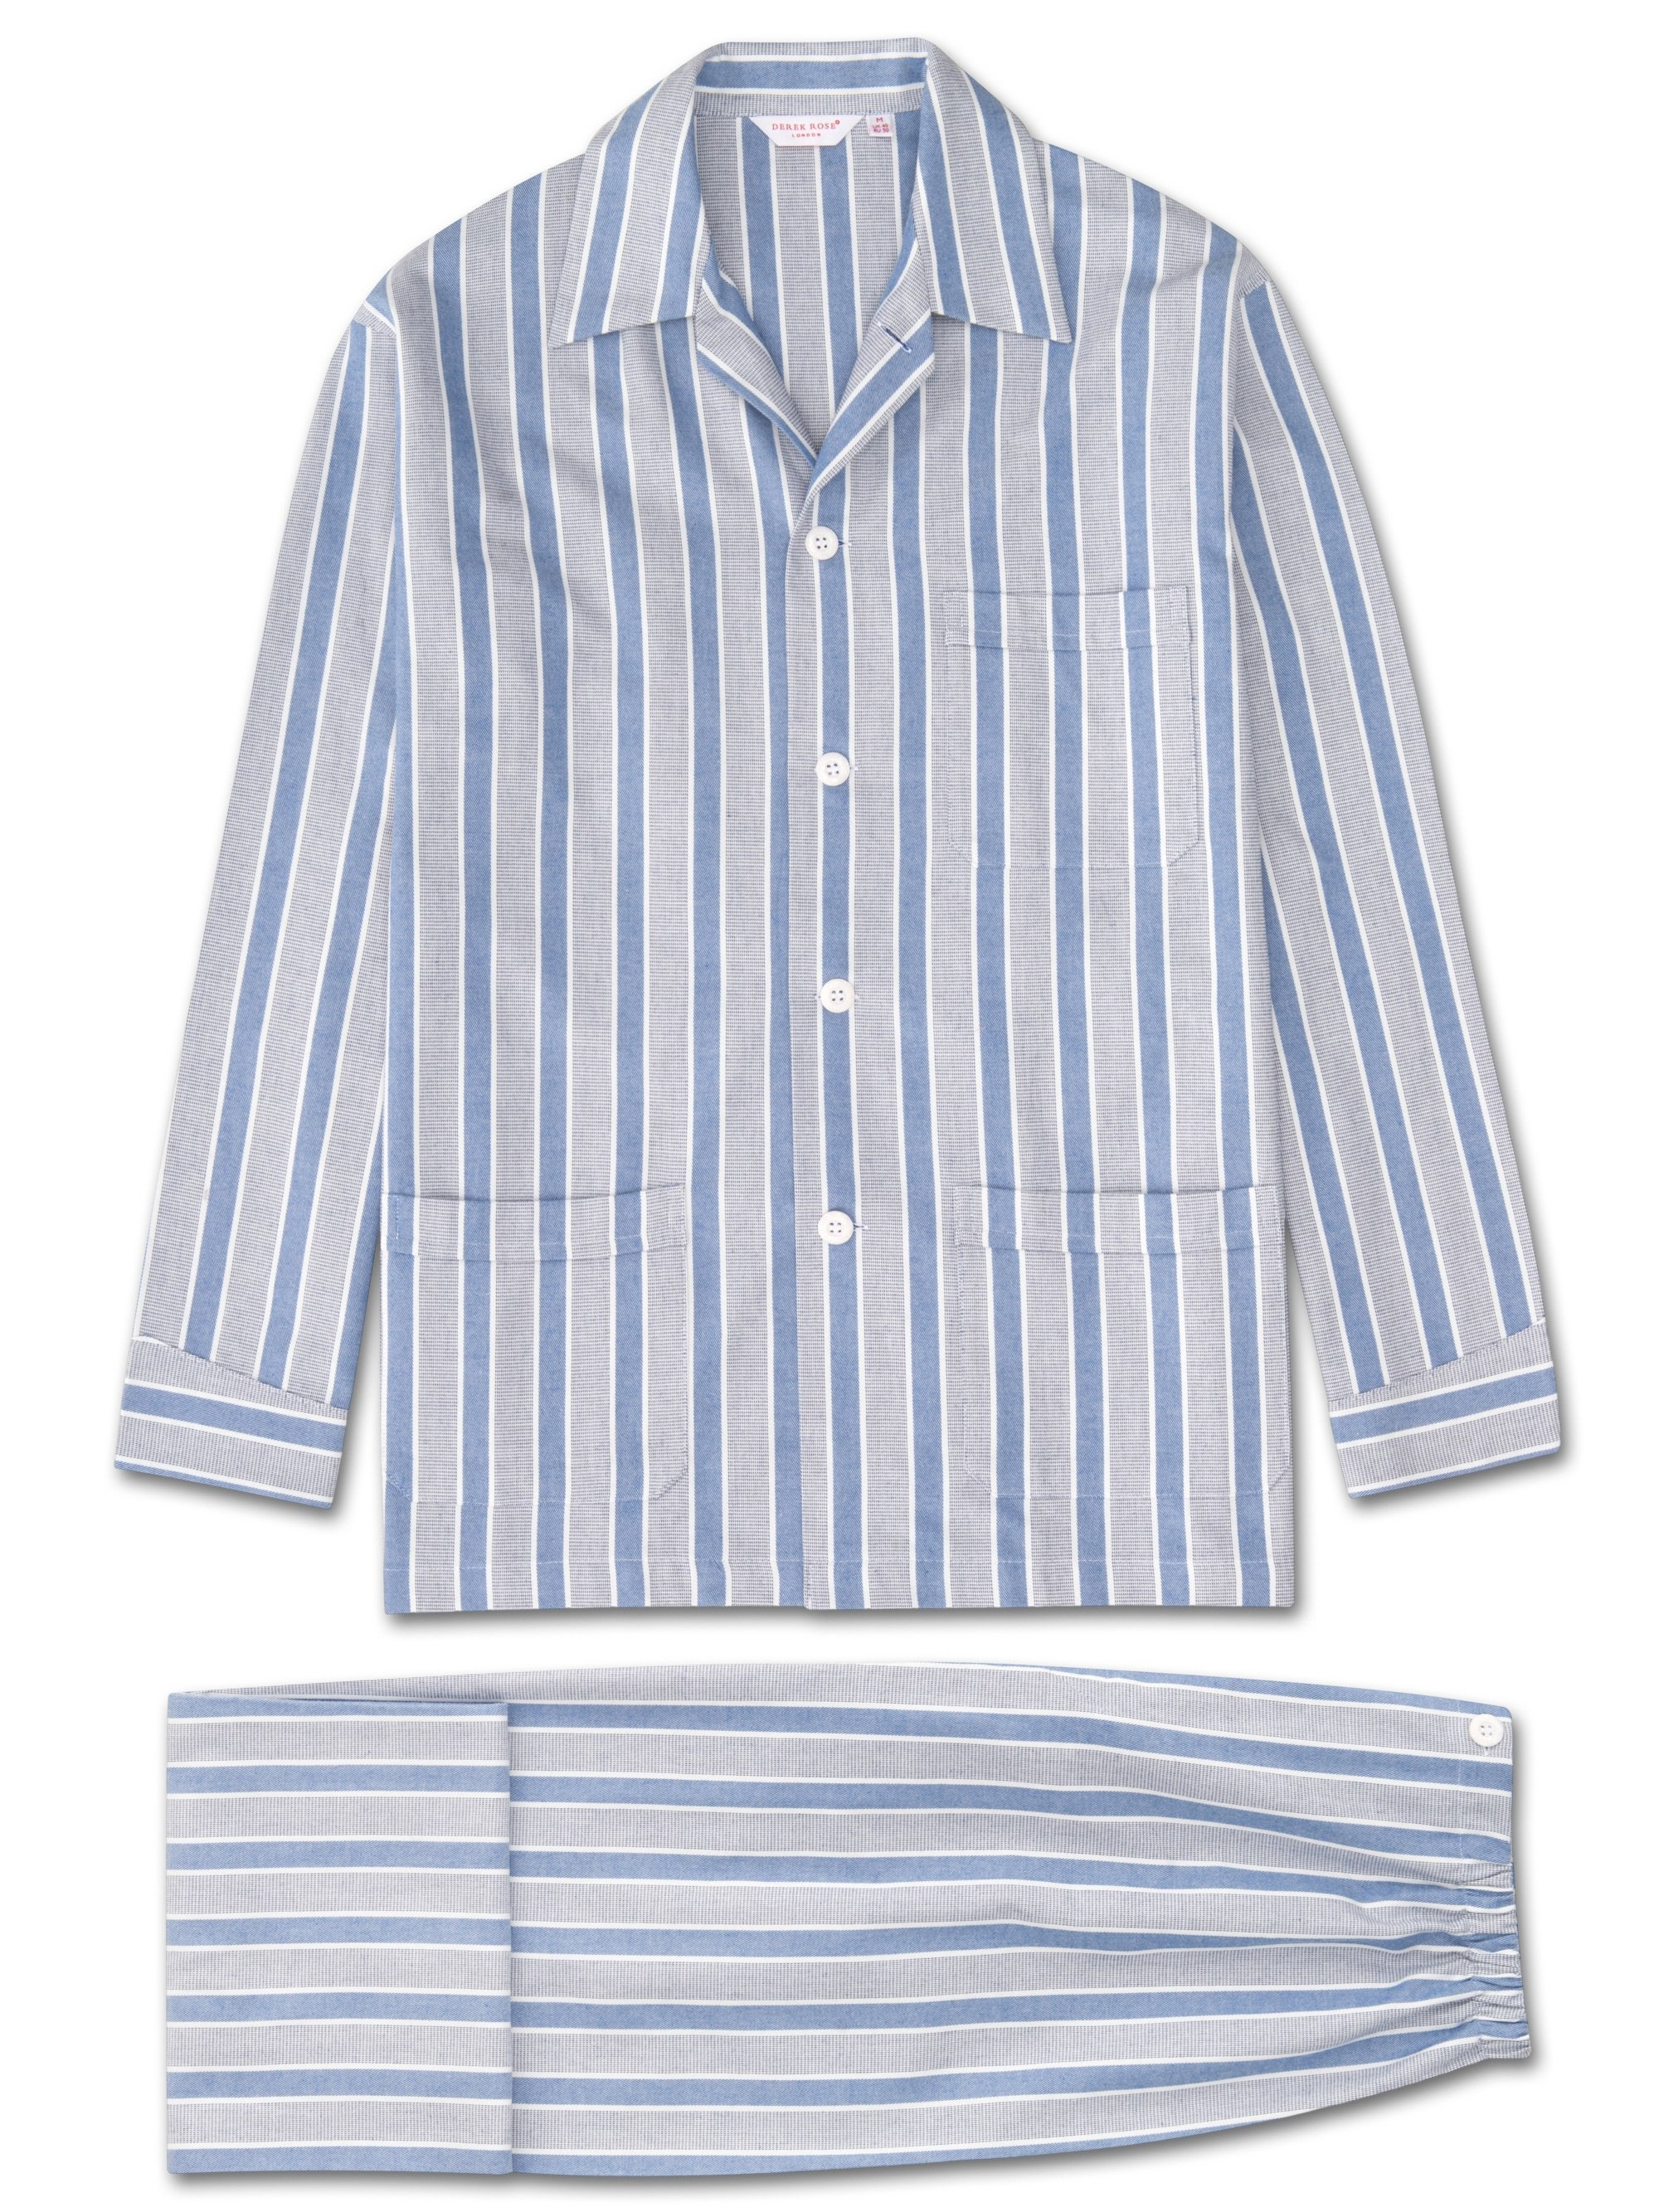 Men's Classic Fit Pyjamas Arctic 17 Brushed Cotton Stripe Blue